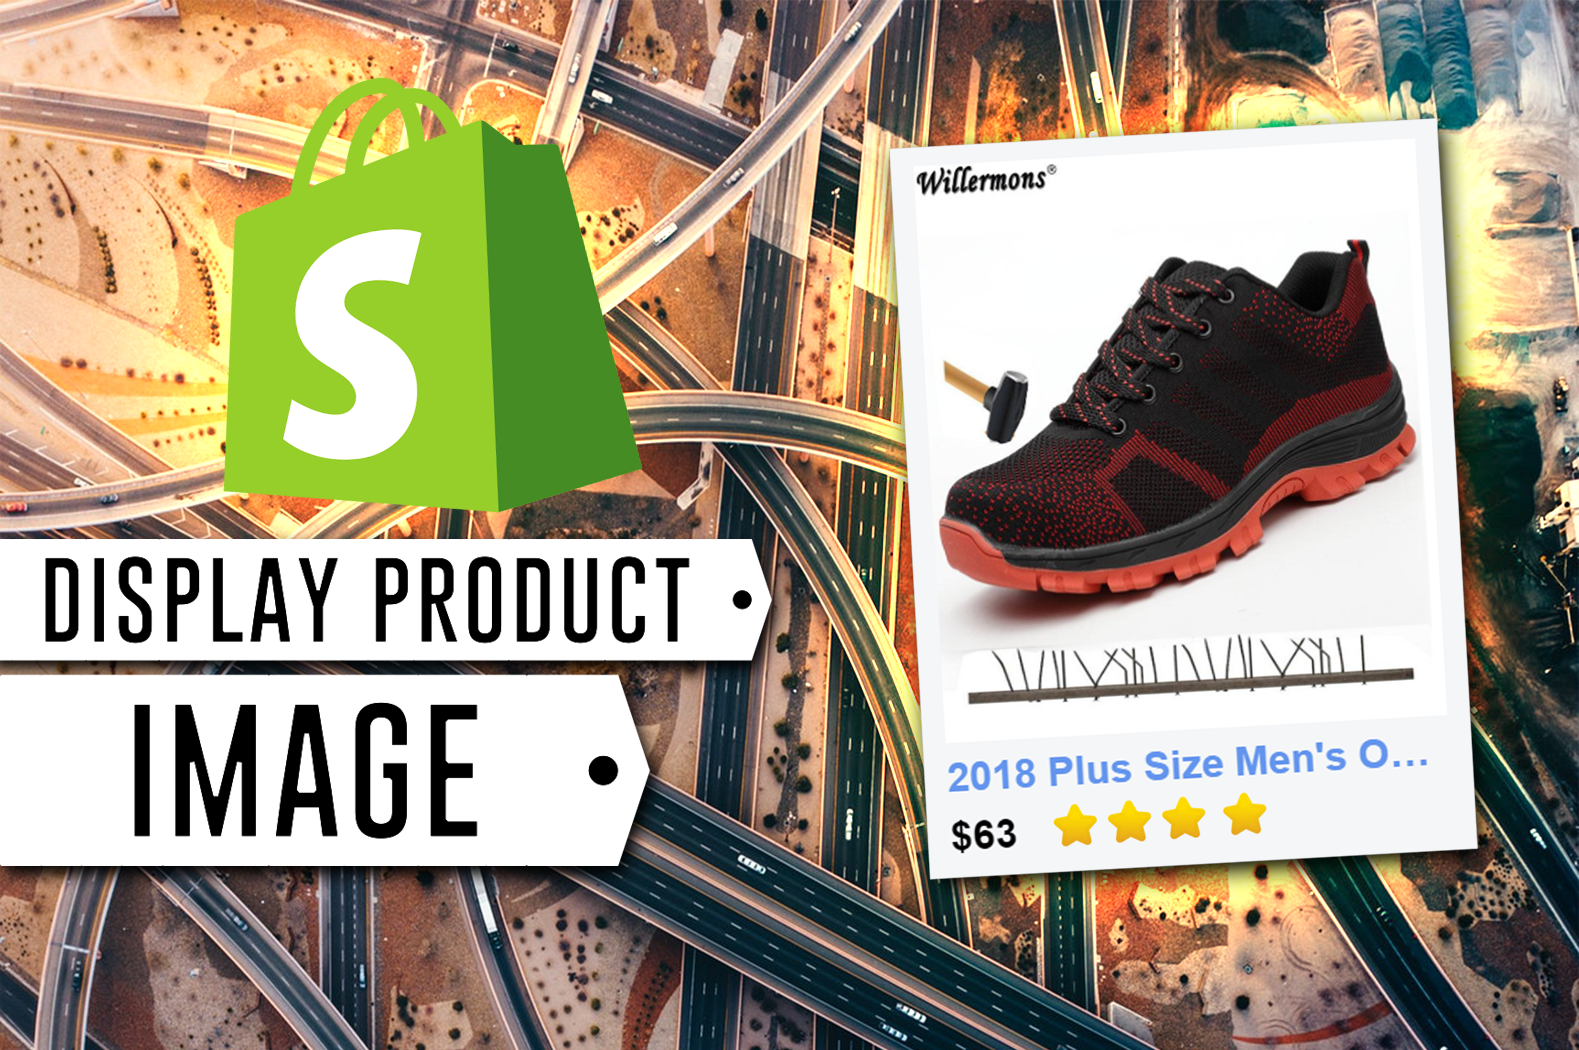 How to Display Shopify Product Images and Price and Name - Shopify App Development Tutorial PHP